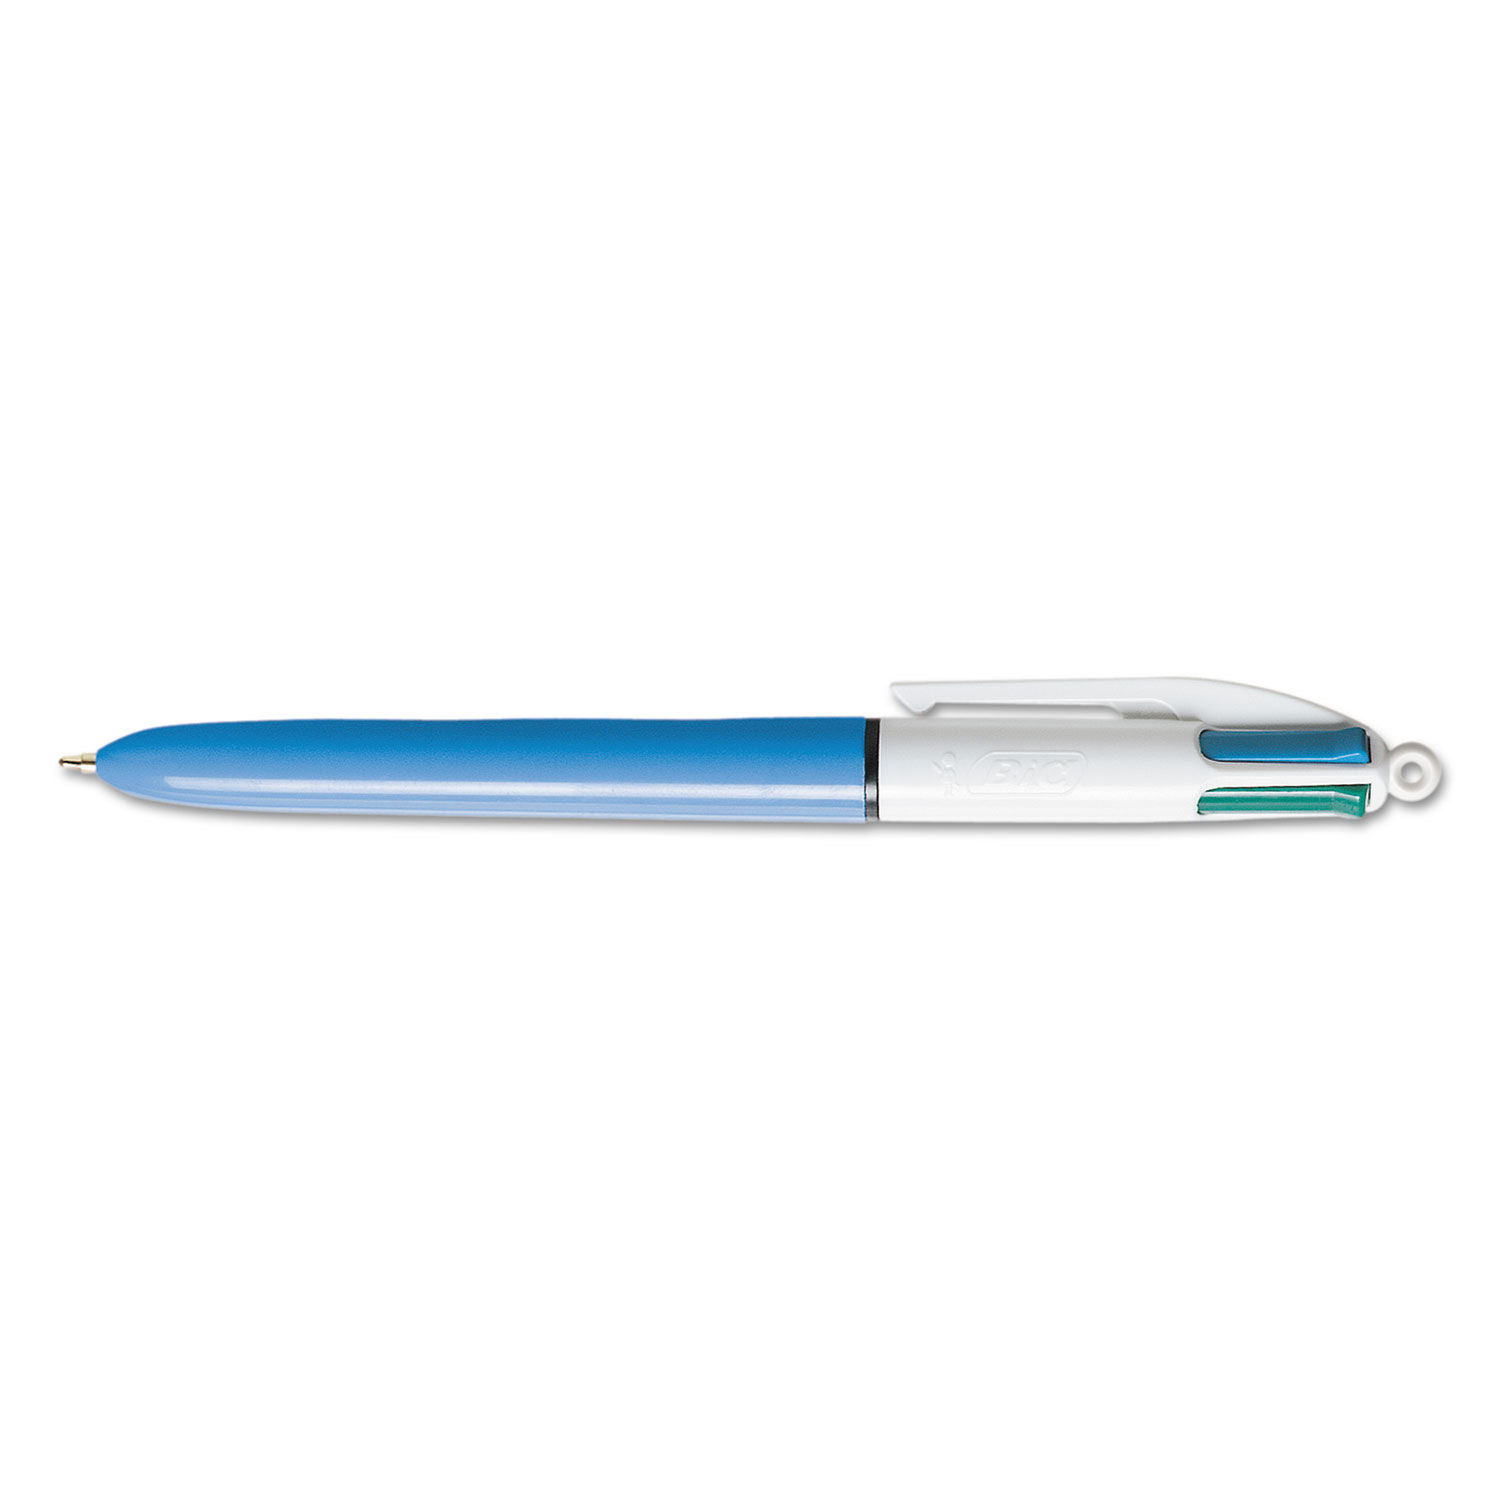 Black 4 in 1 Colour Retractable Ballpoint Pen Red /& Green Ink -HNKO Blue